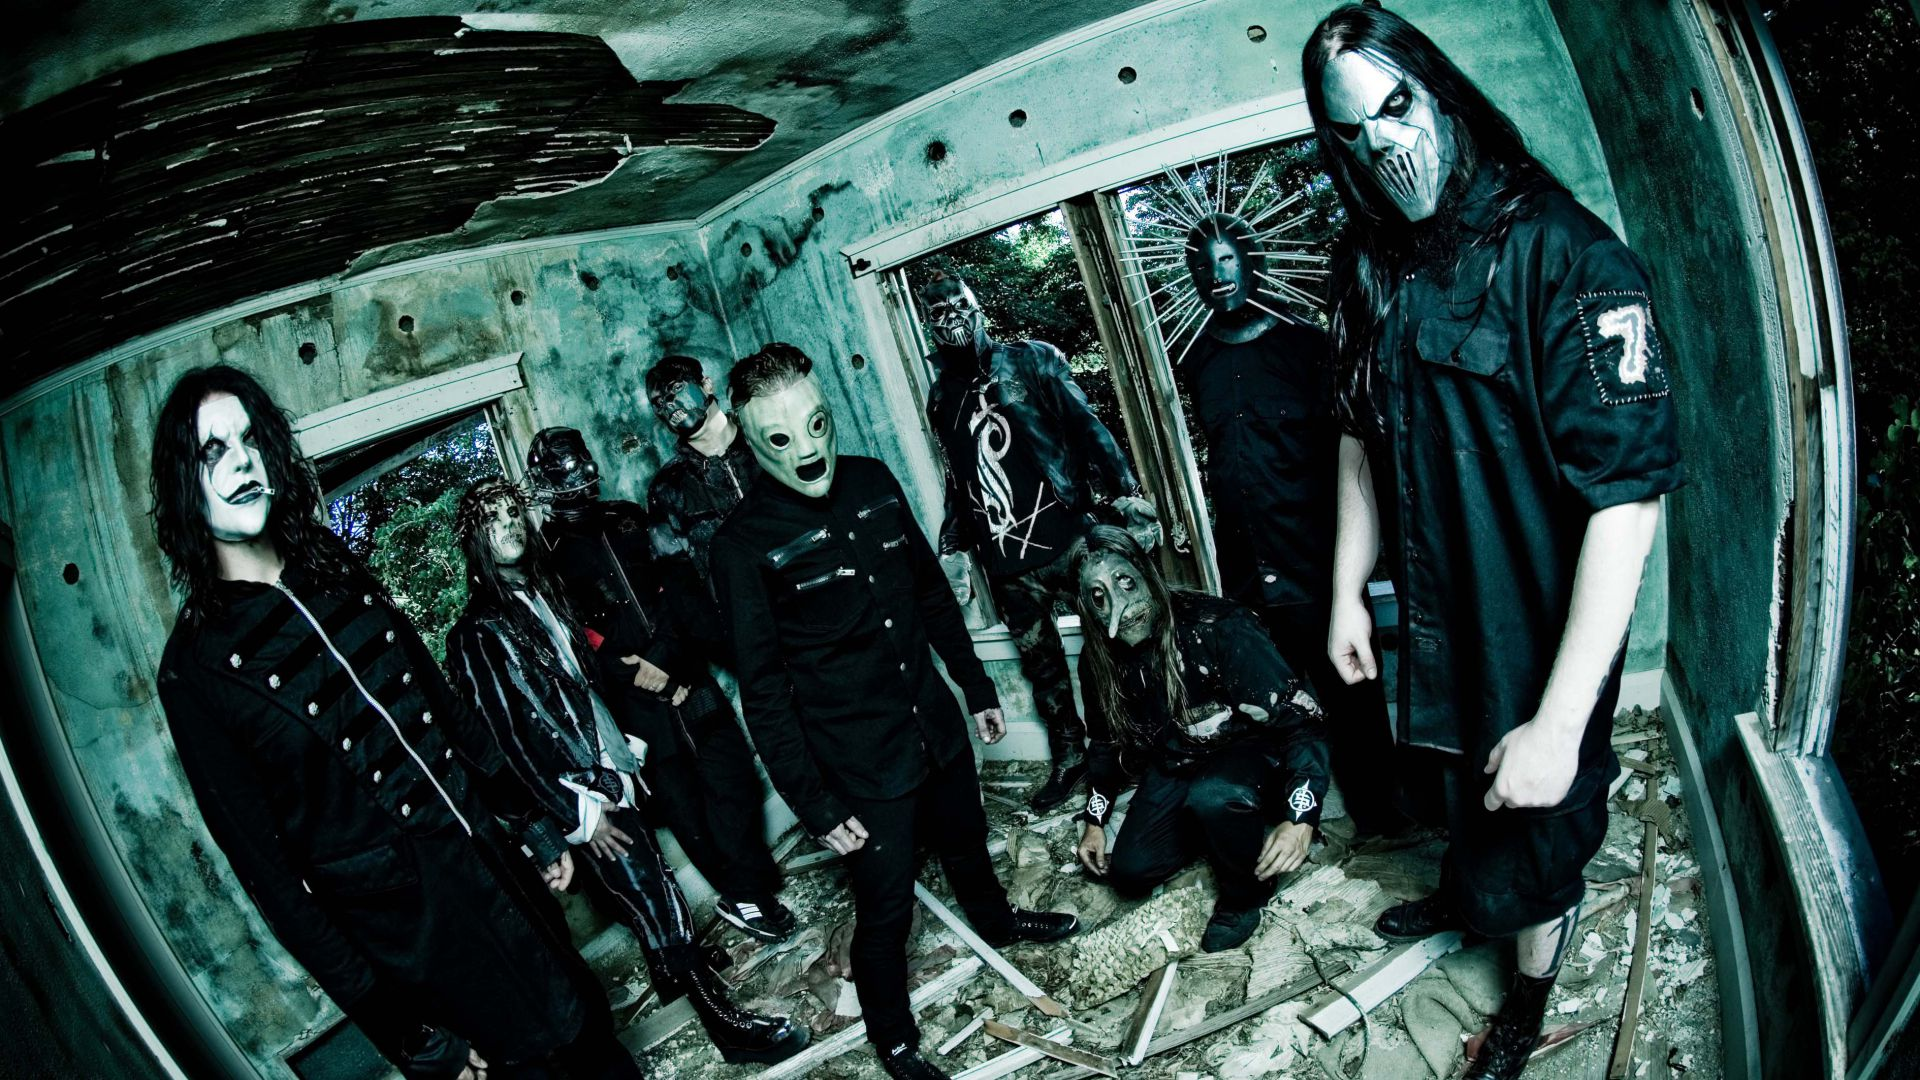 Slipknot, Top music artist and bands, Corey Taylor, Mick Thomson, Jim Root, Craig Jones, Sid Wilson, Shawn Crahan, Chris Fehn (horizontal)